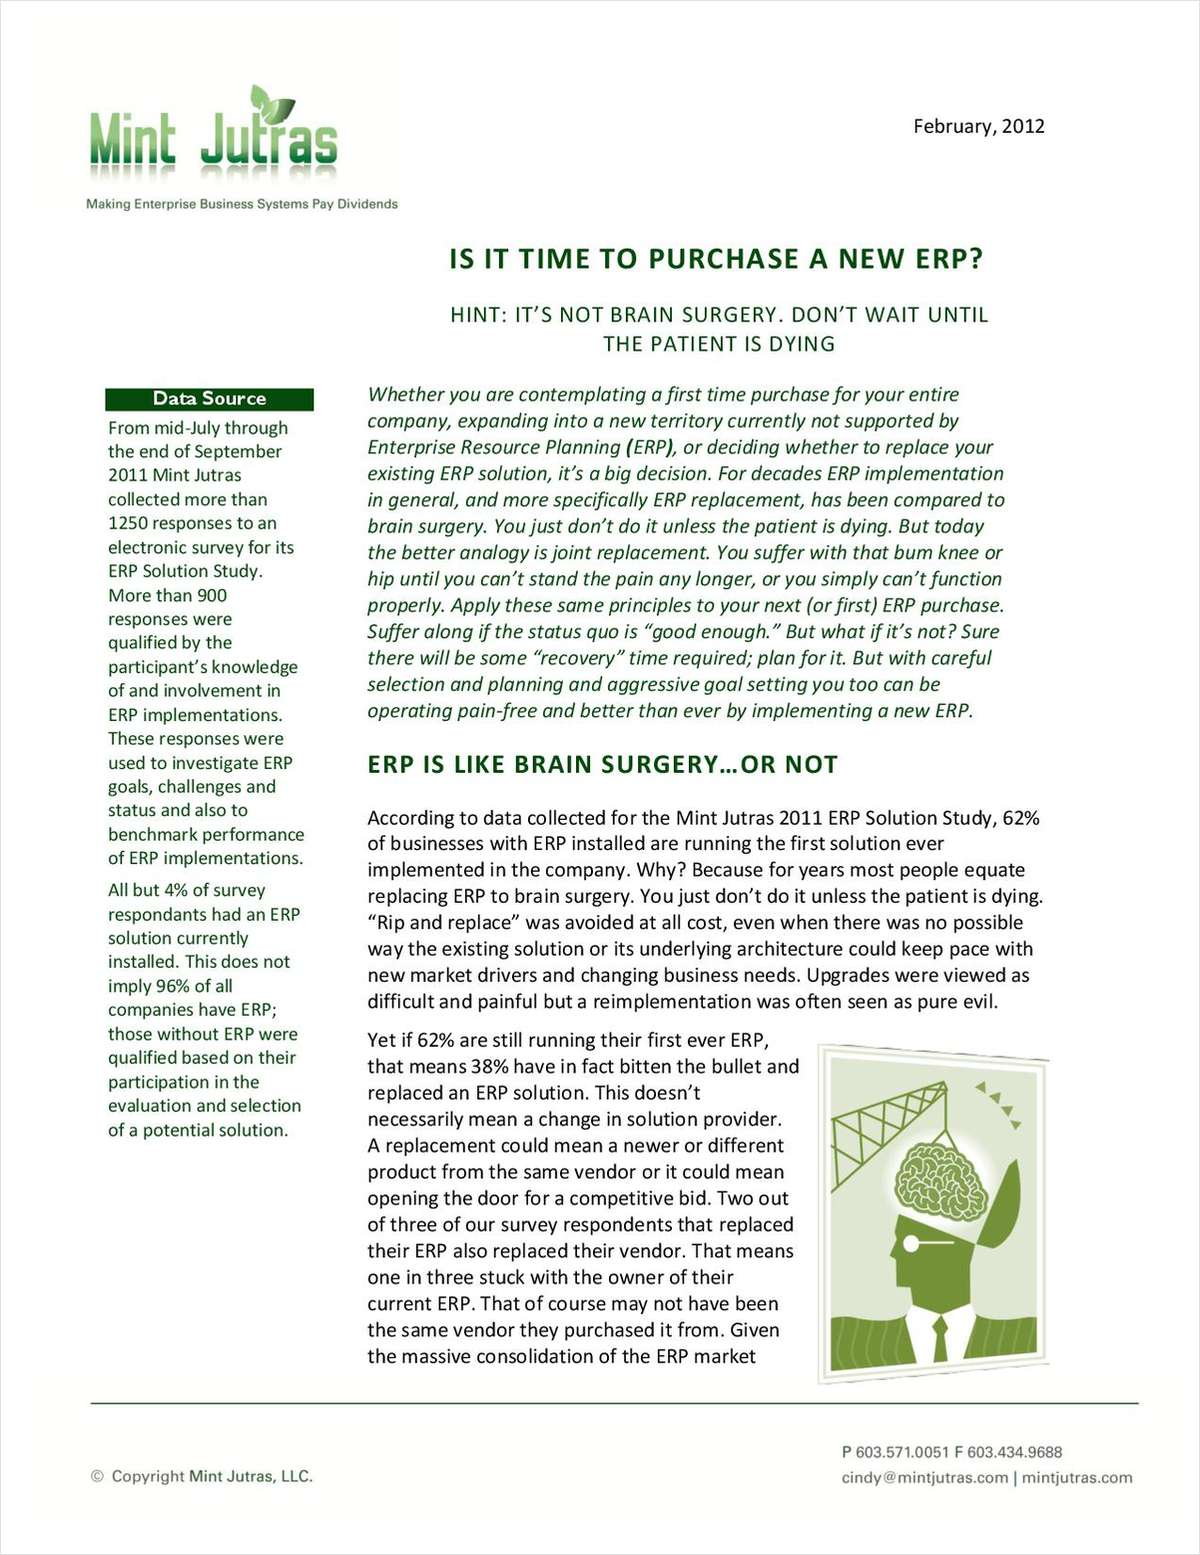 Is It Time to Purchase a New ERP?